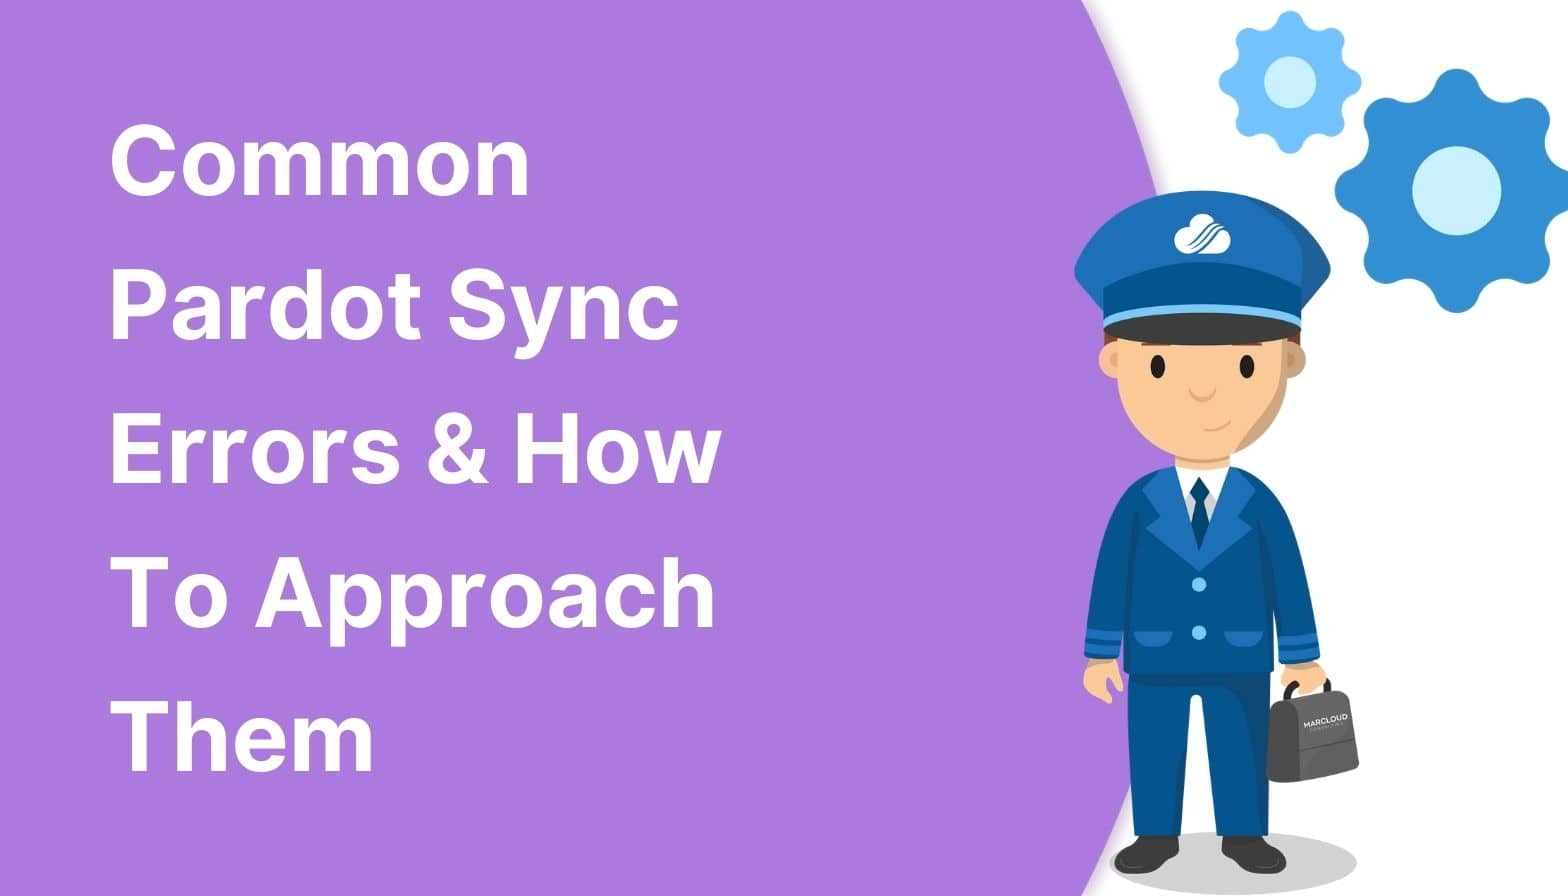 Common Pardot Sync Errors and How To Approach Them